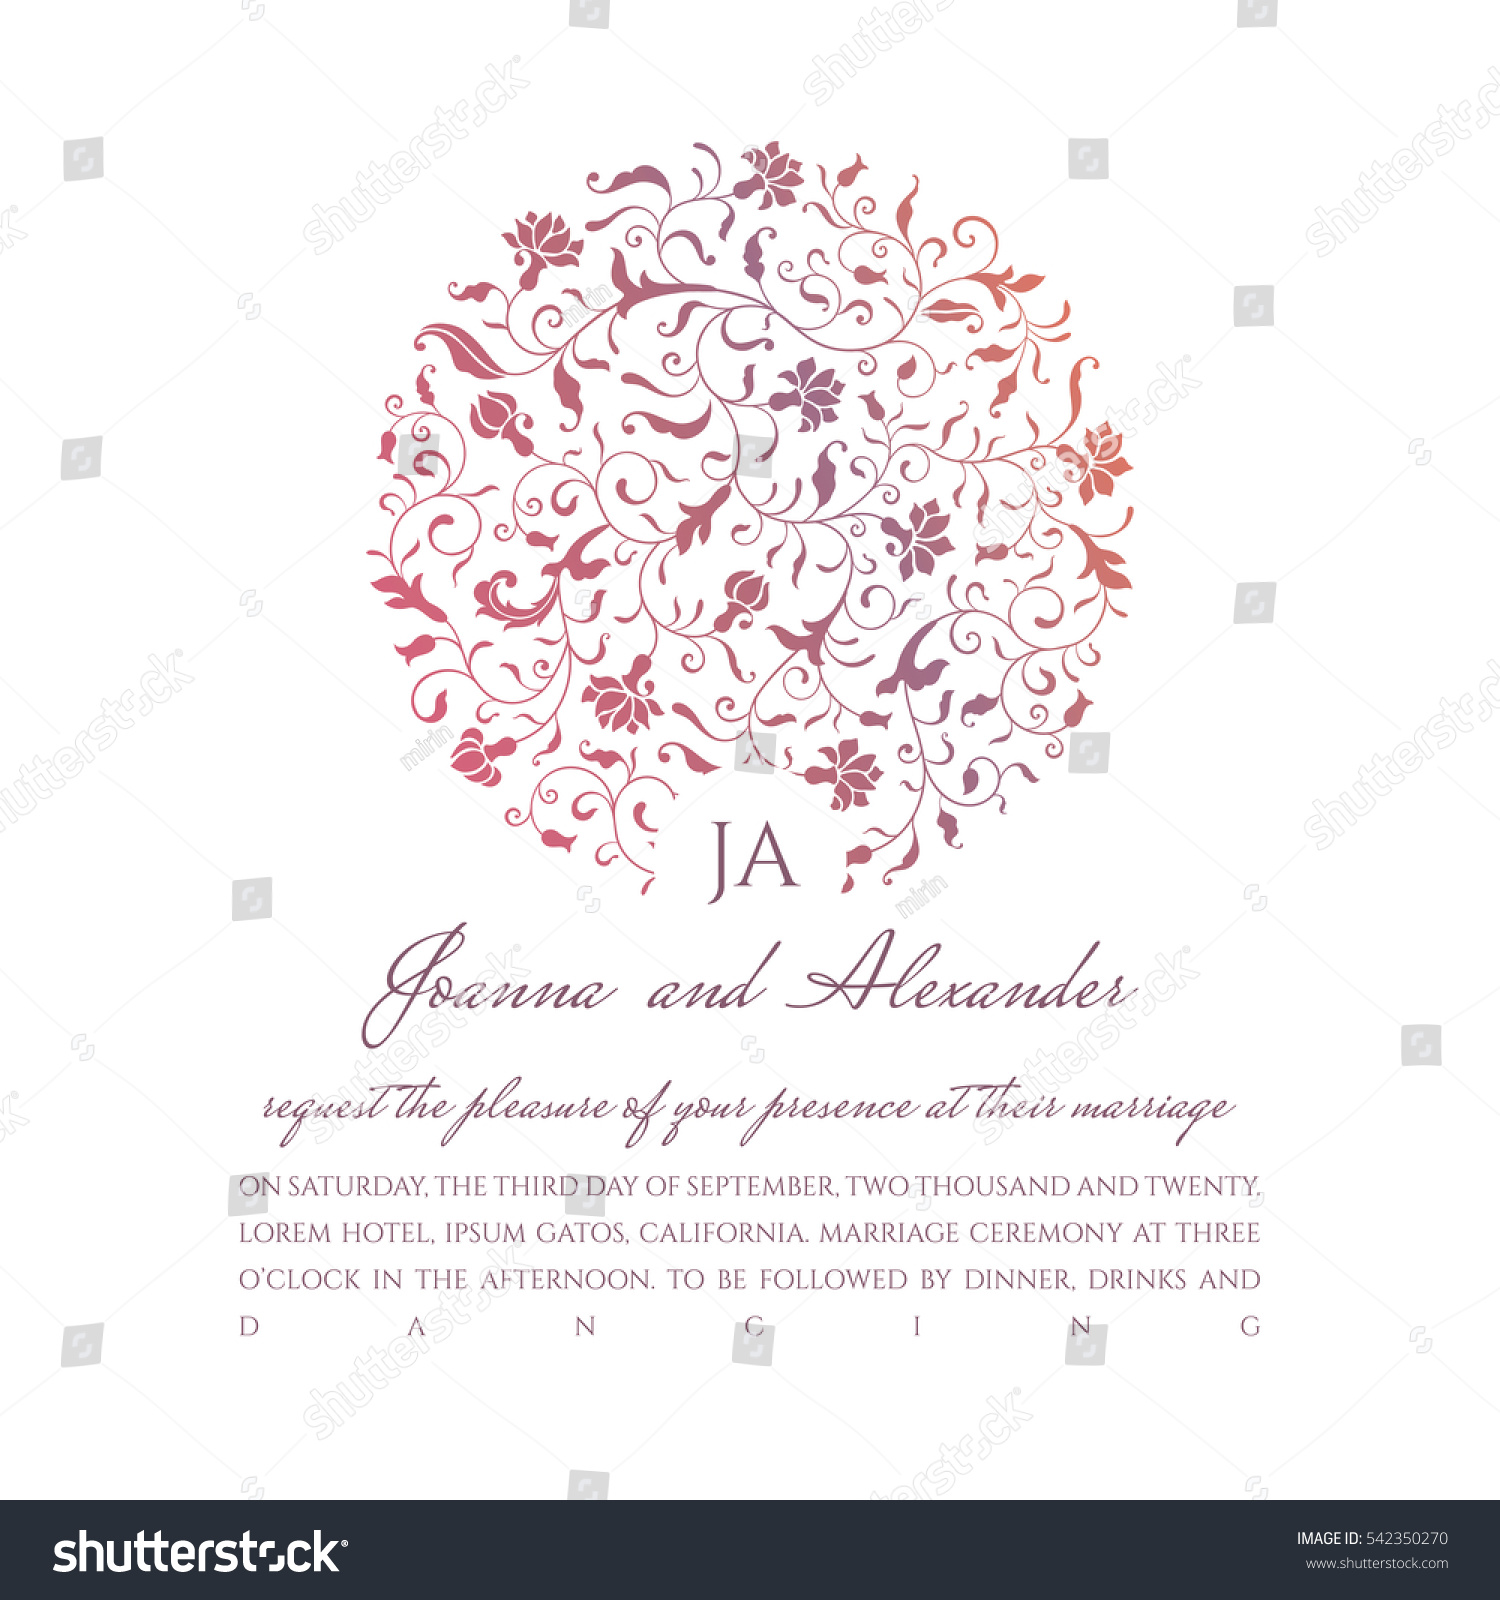 Invite Sample Circle Floral Pattern Bright Stock Vector 542350270 ...